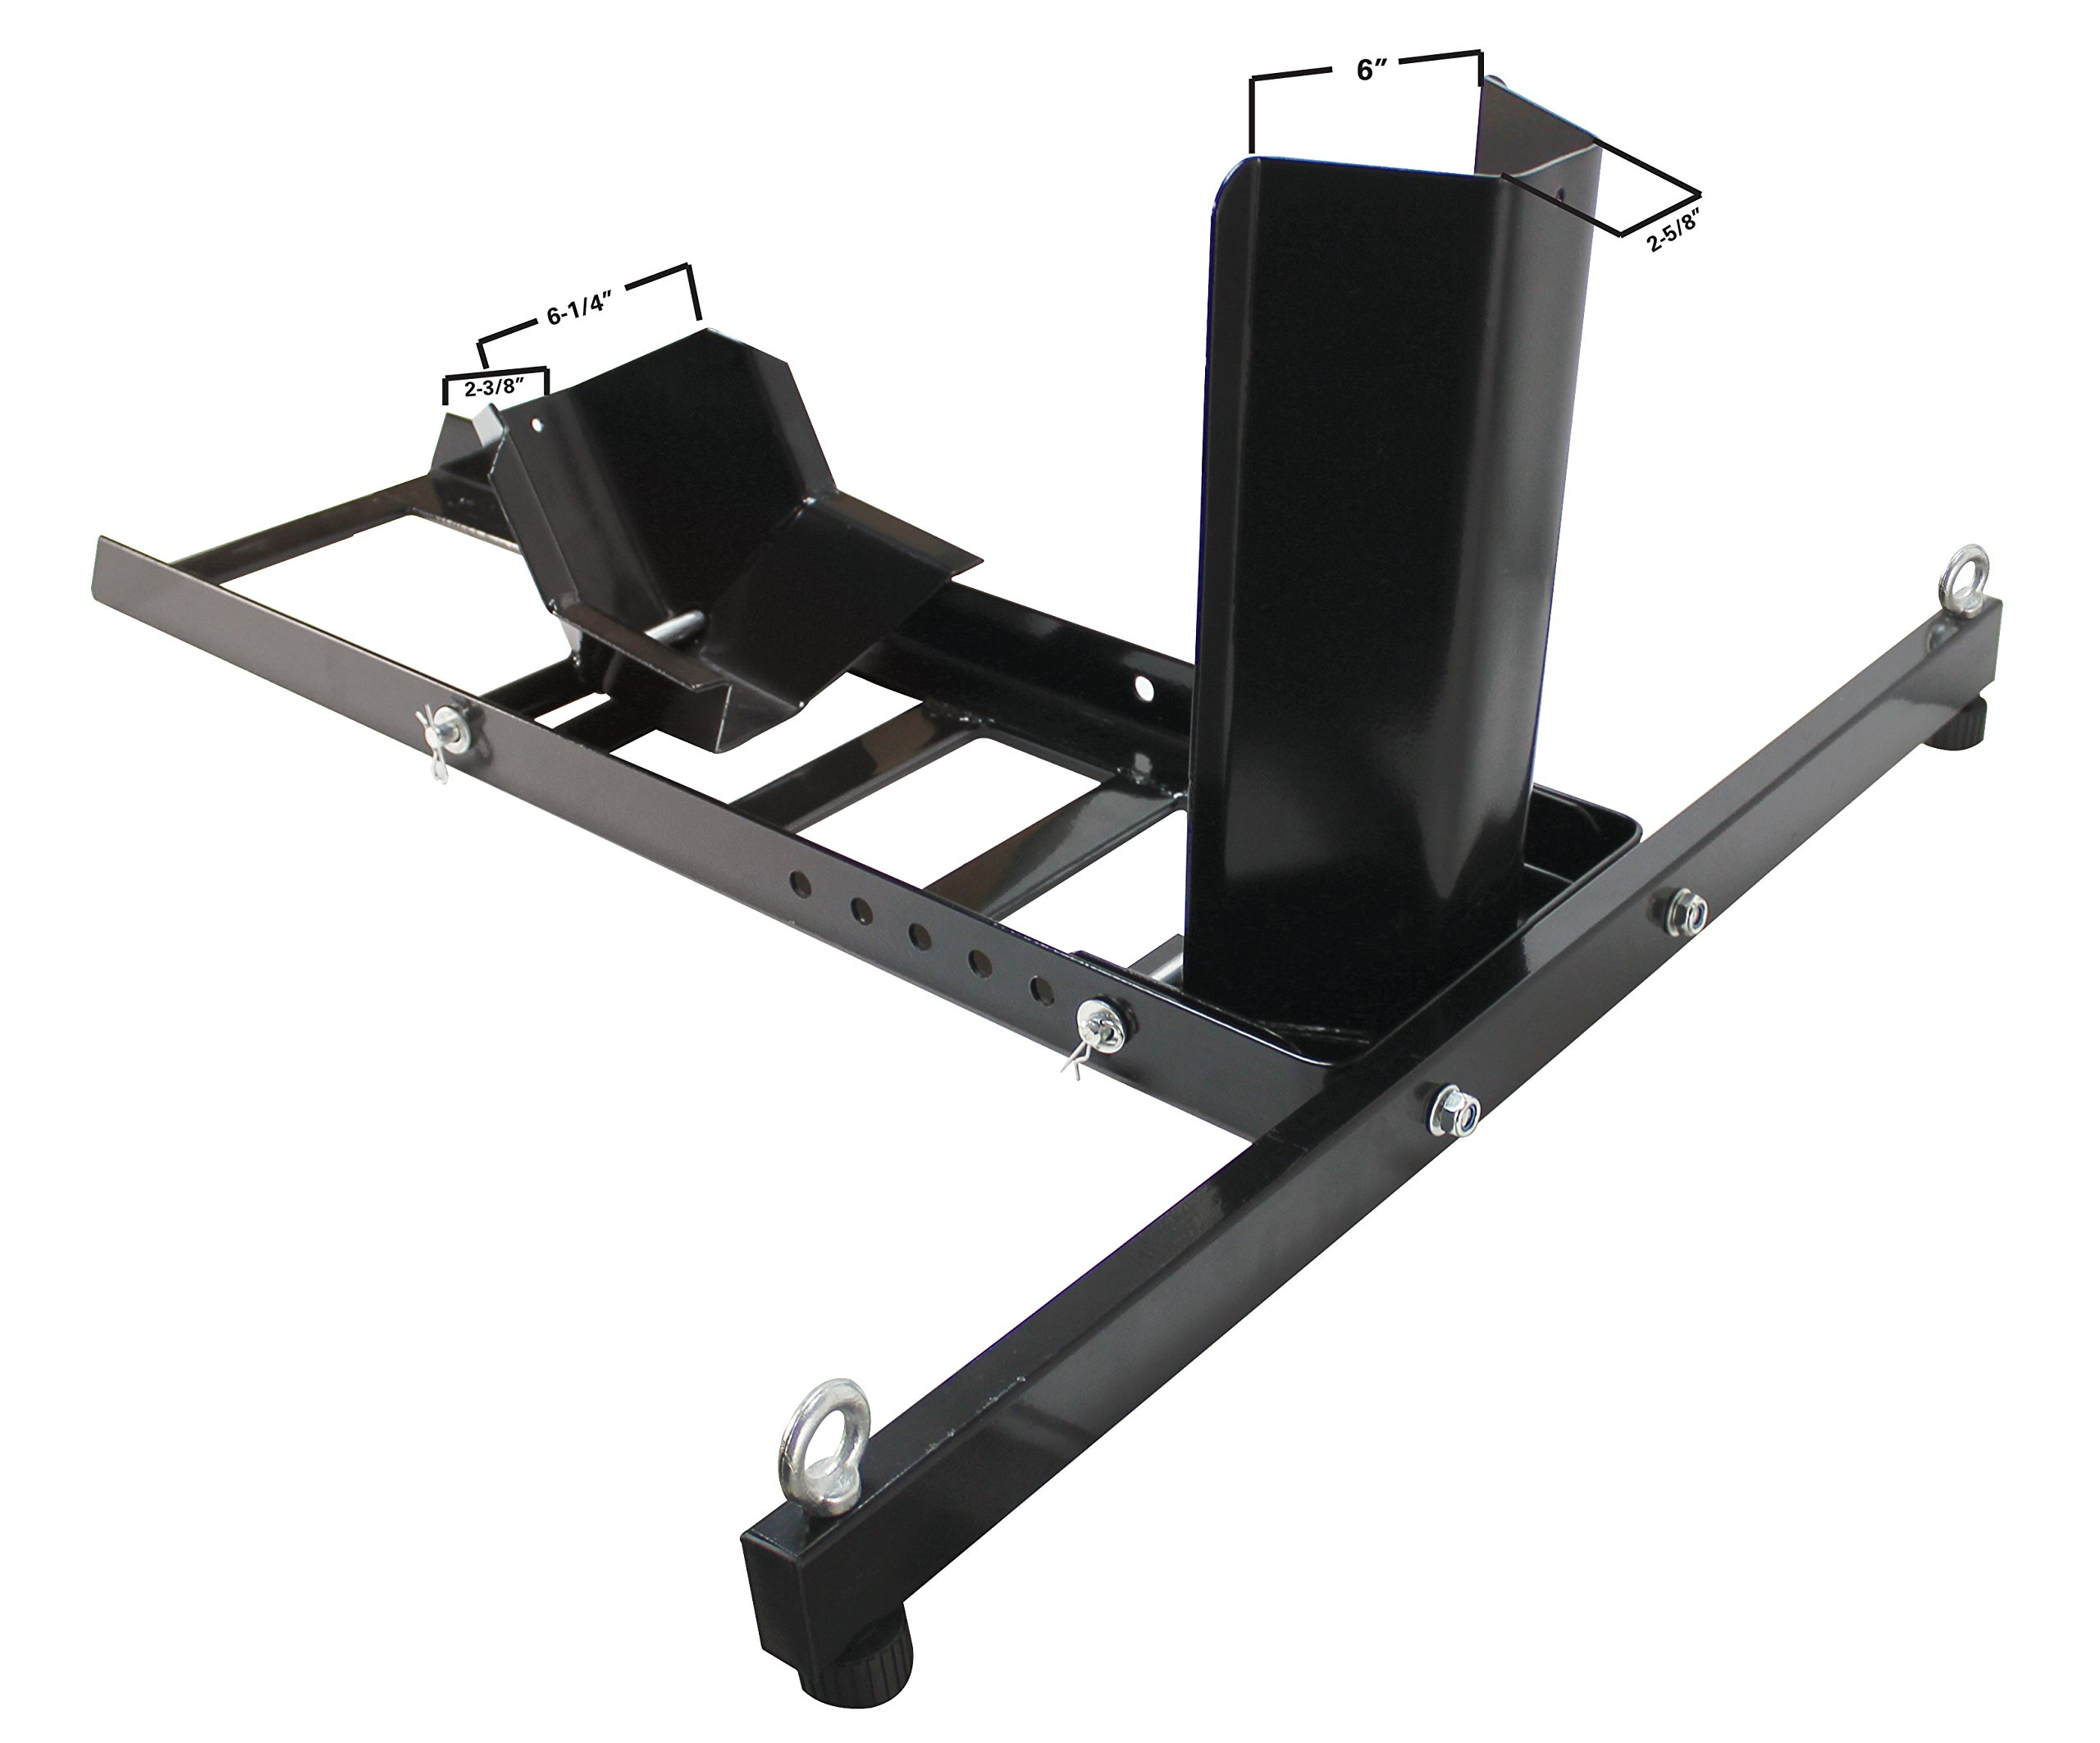 Extreme Max 5001.5757 Adjustable Motorcycle Stand/Wheel Chock-1,800 lbs by Extreme Max (Image #4)